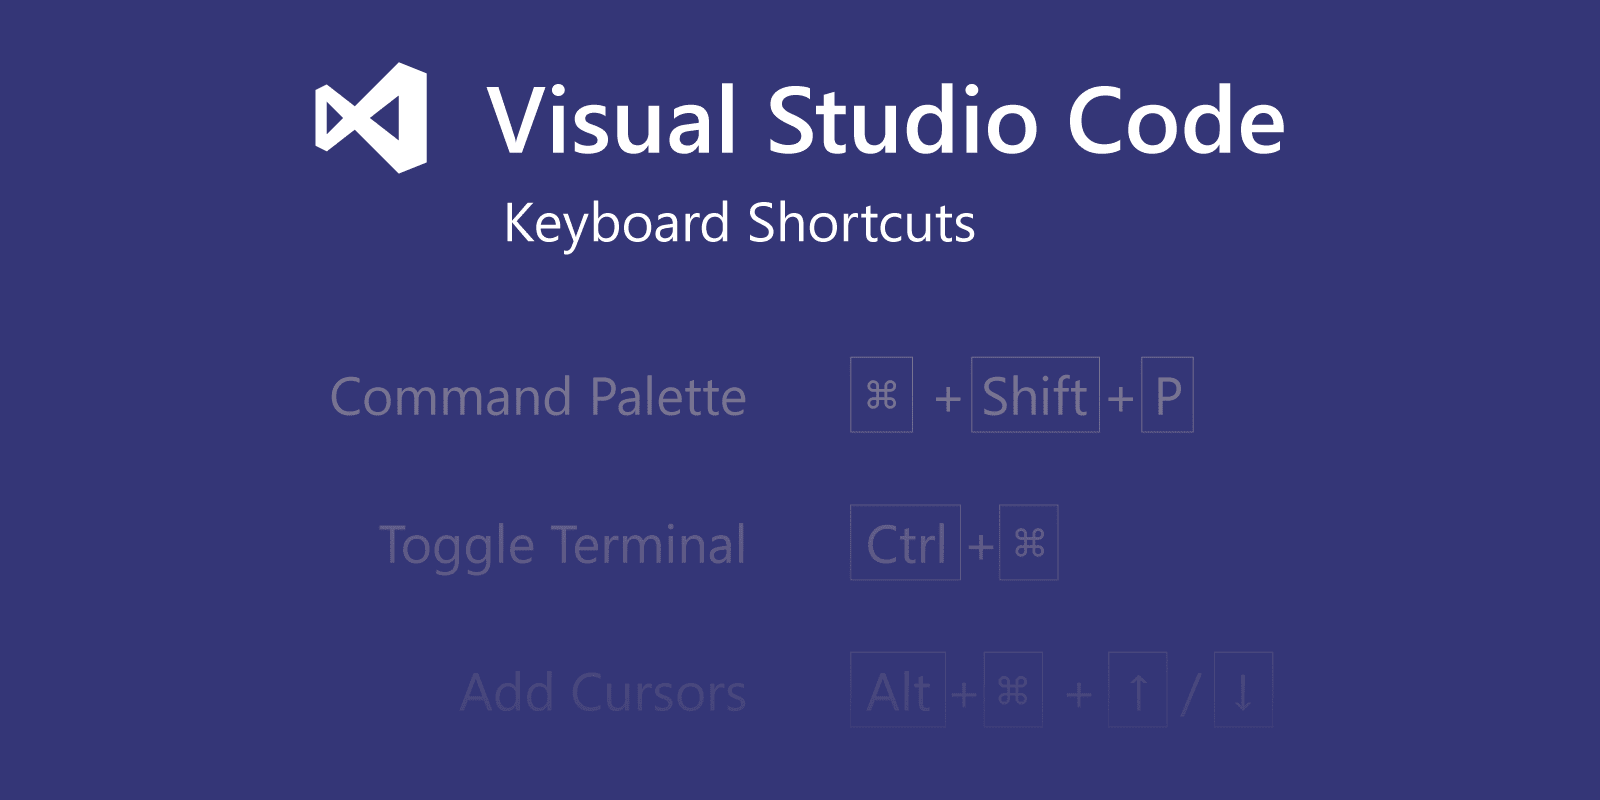 Visual Studio Code Key Bindings